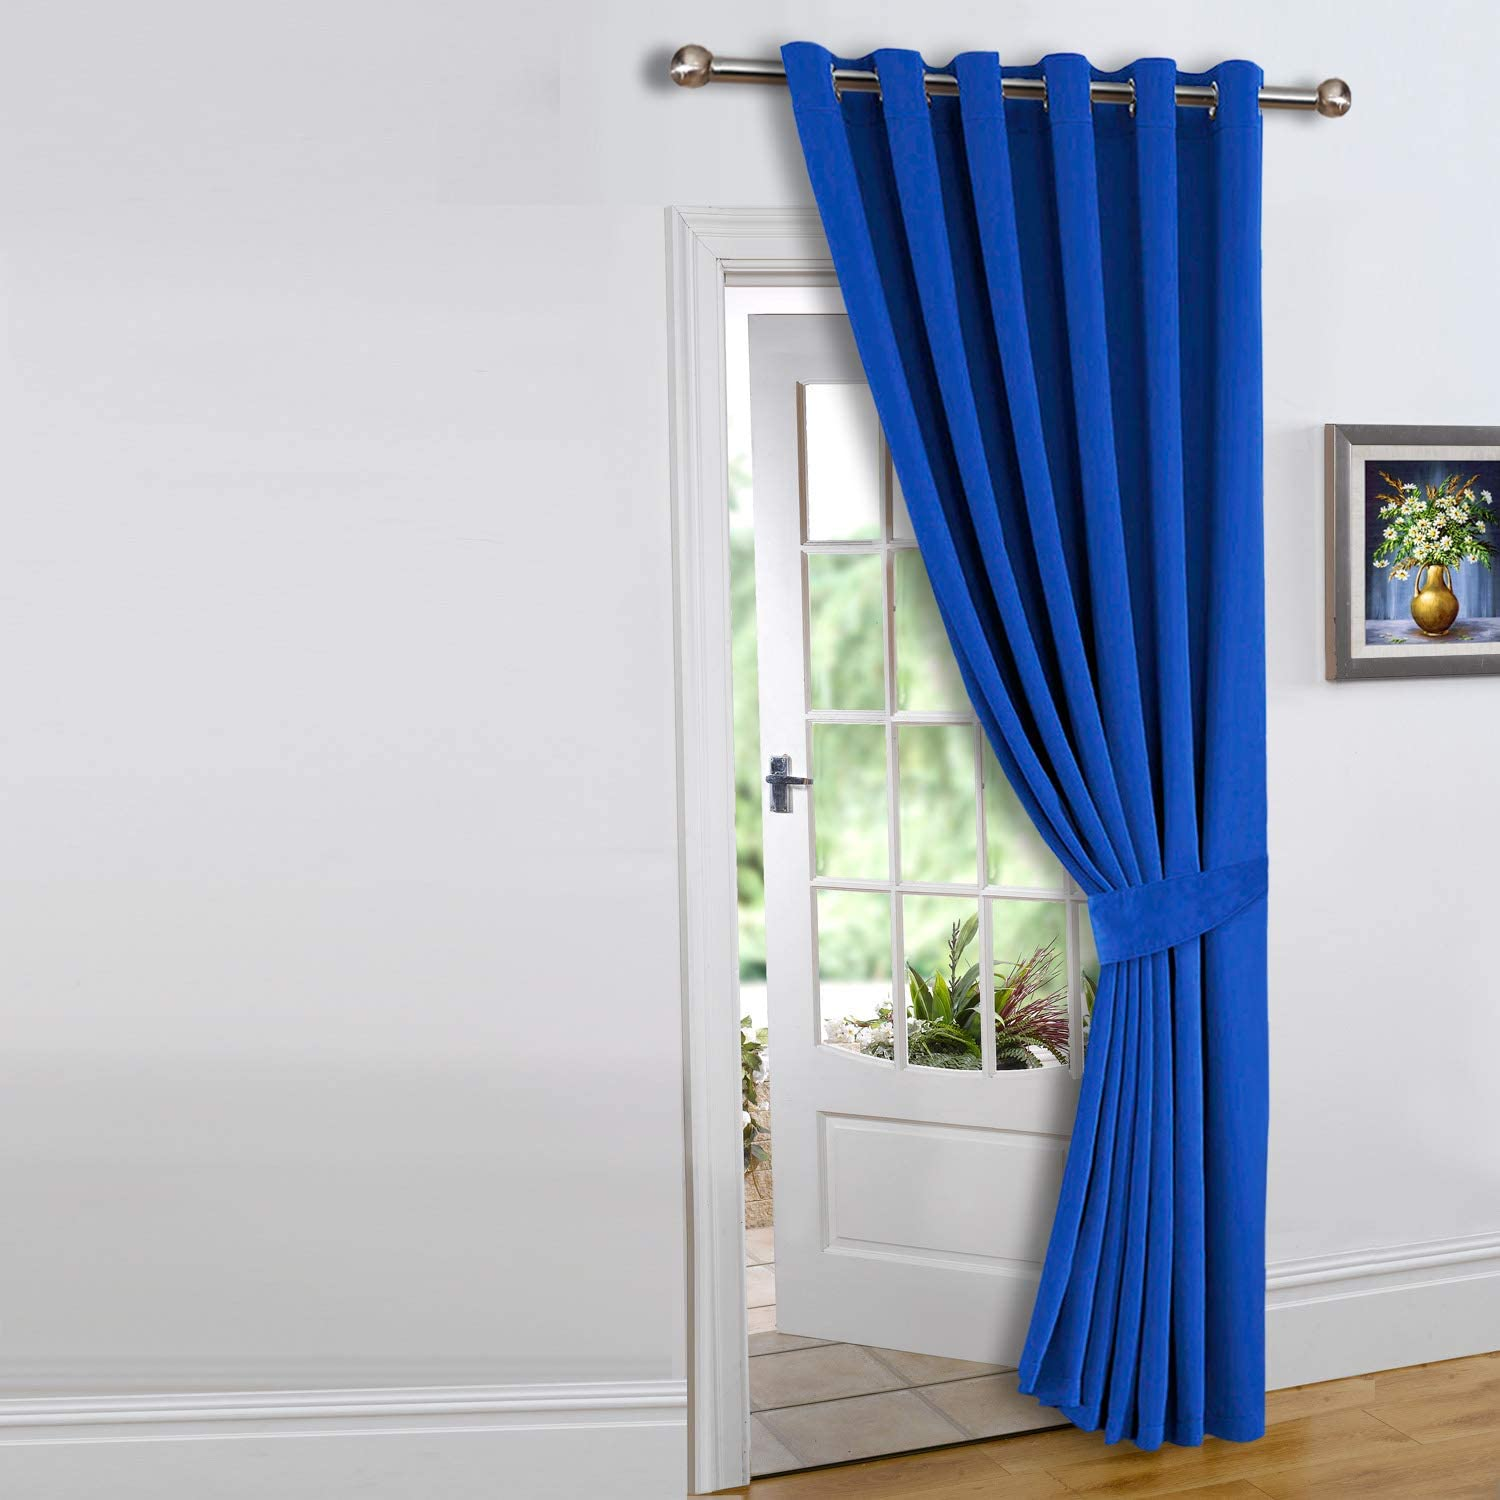 Imperial Rooms Single Door Curtain Thermal Insulated Eyelet Blue Blackout Curtains (66 x 84 (167x213cm) 66x84 (167x213cm / 1 Piece) Blue - Eyelet